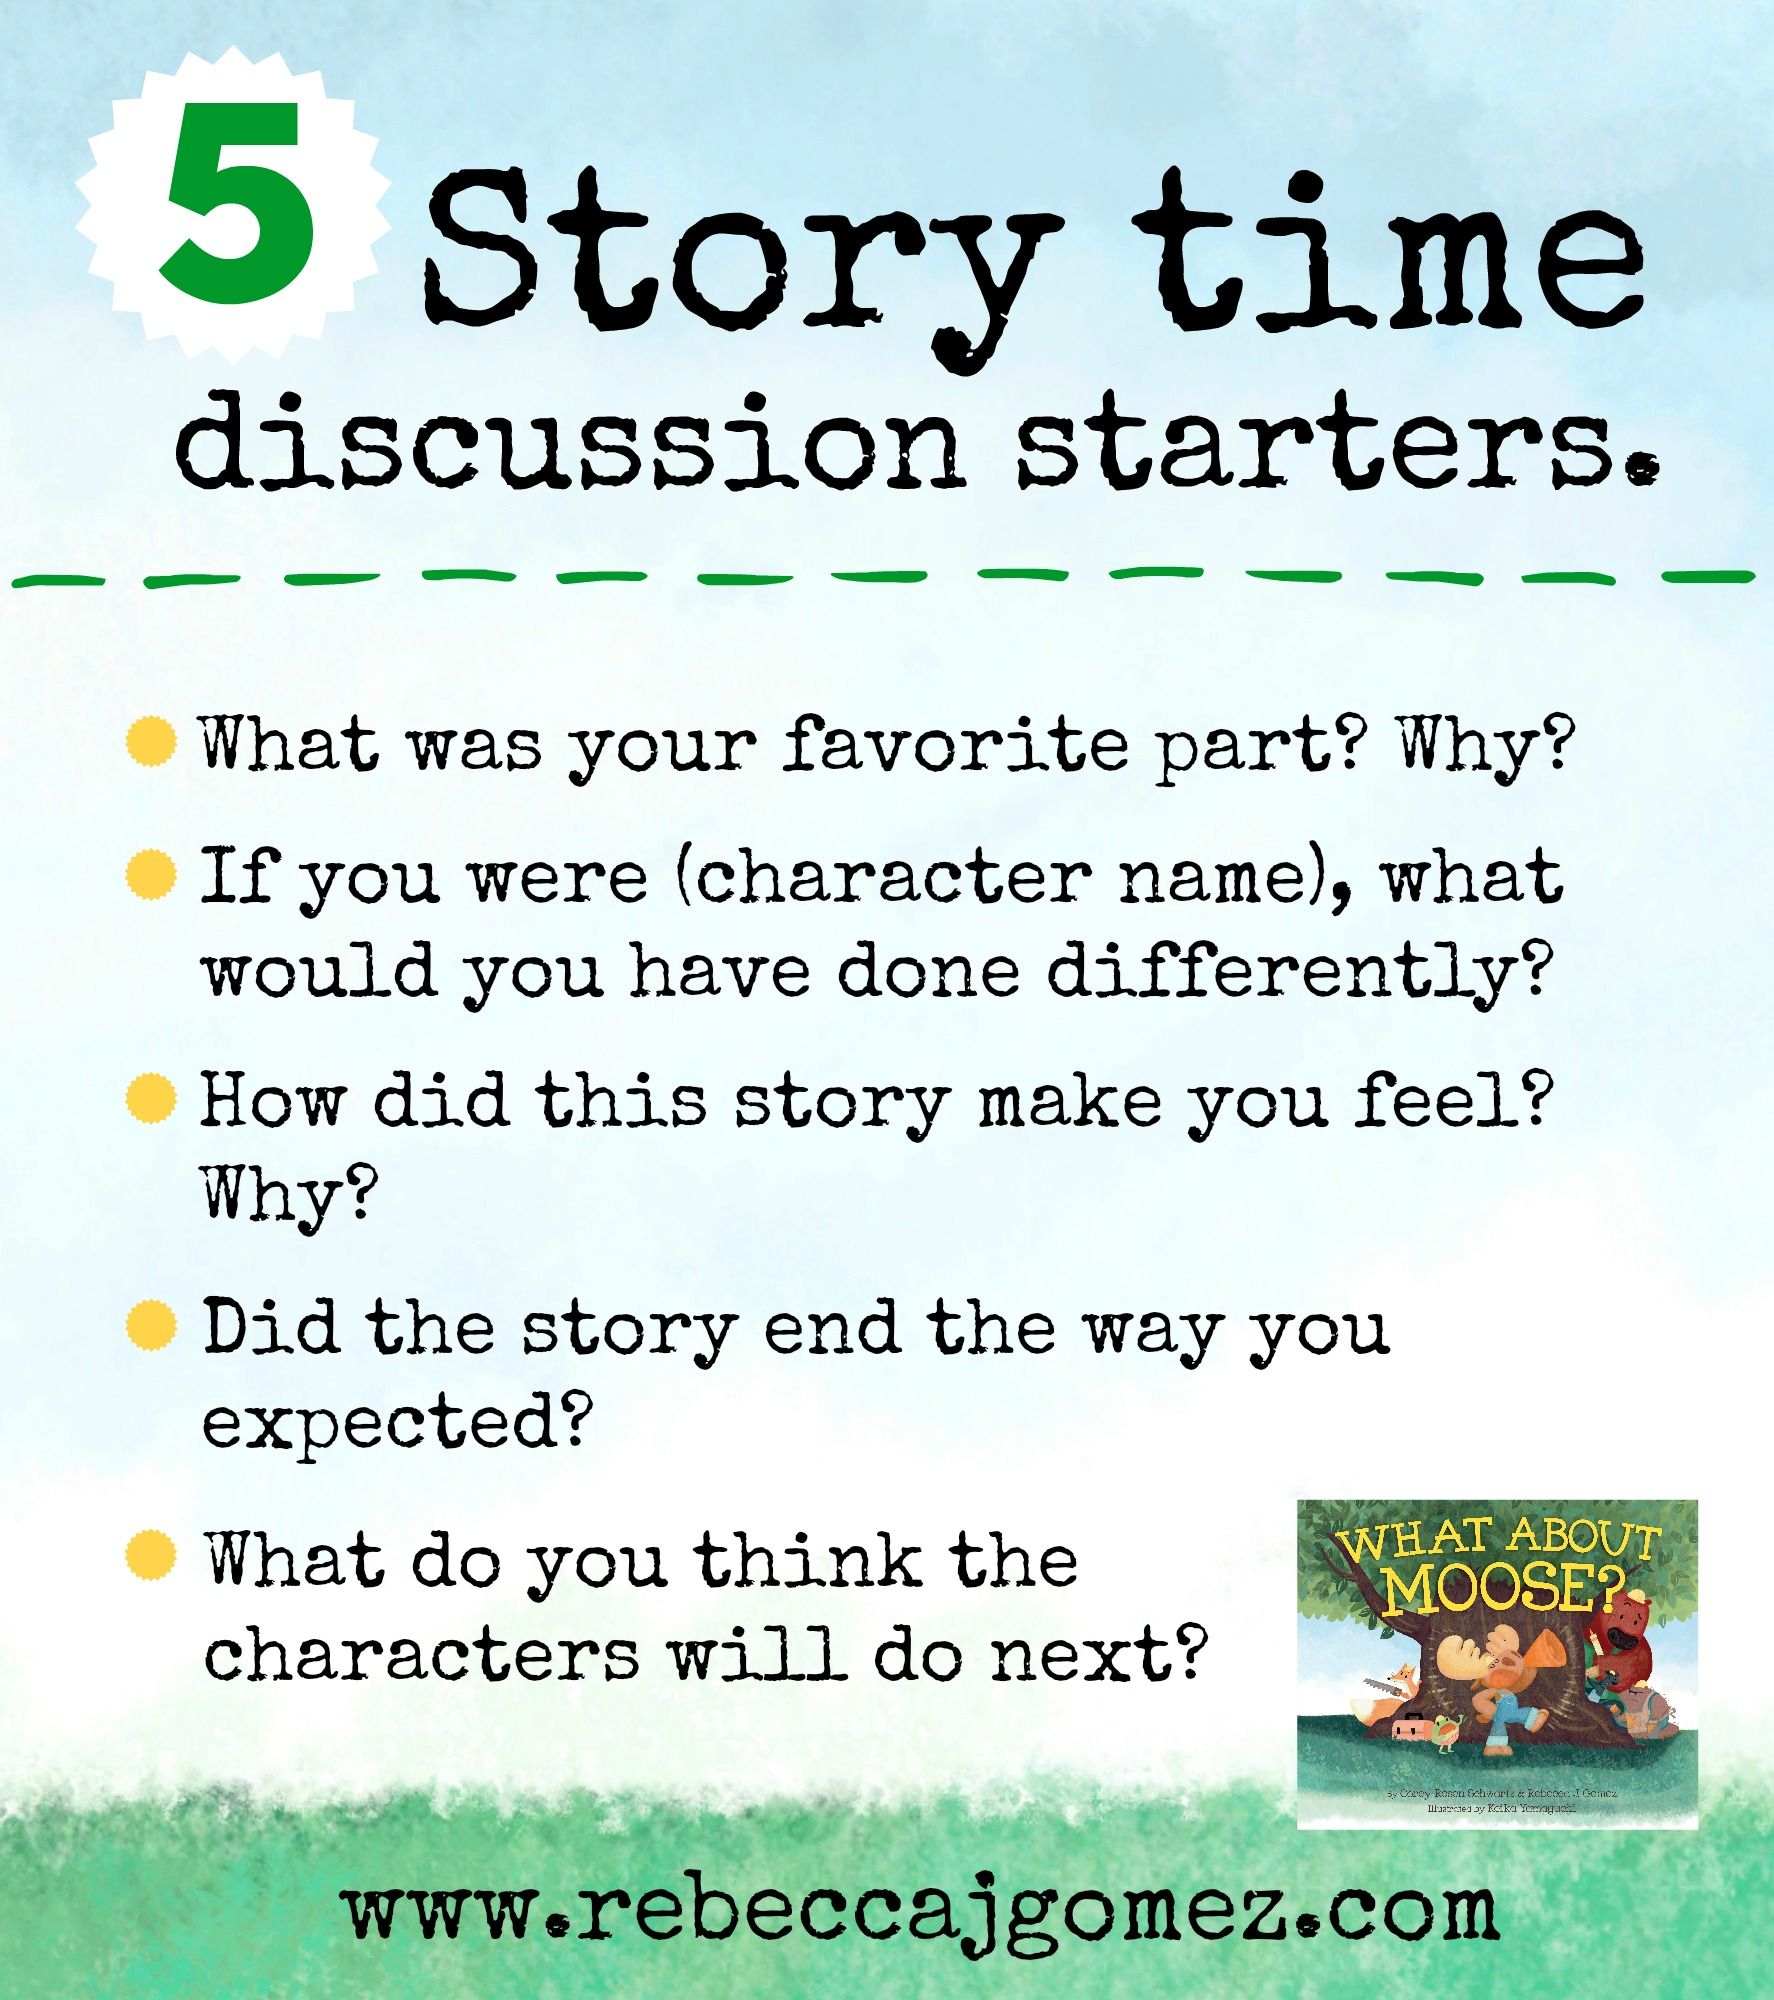 For More Story Time Tips Sign Up For ChildrenS Author Rebecca J